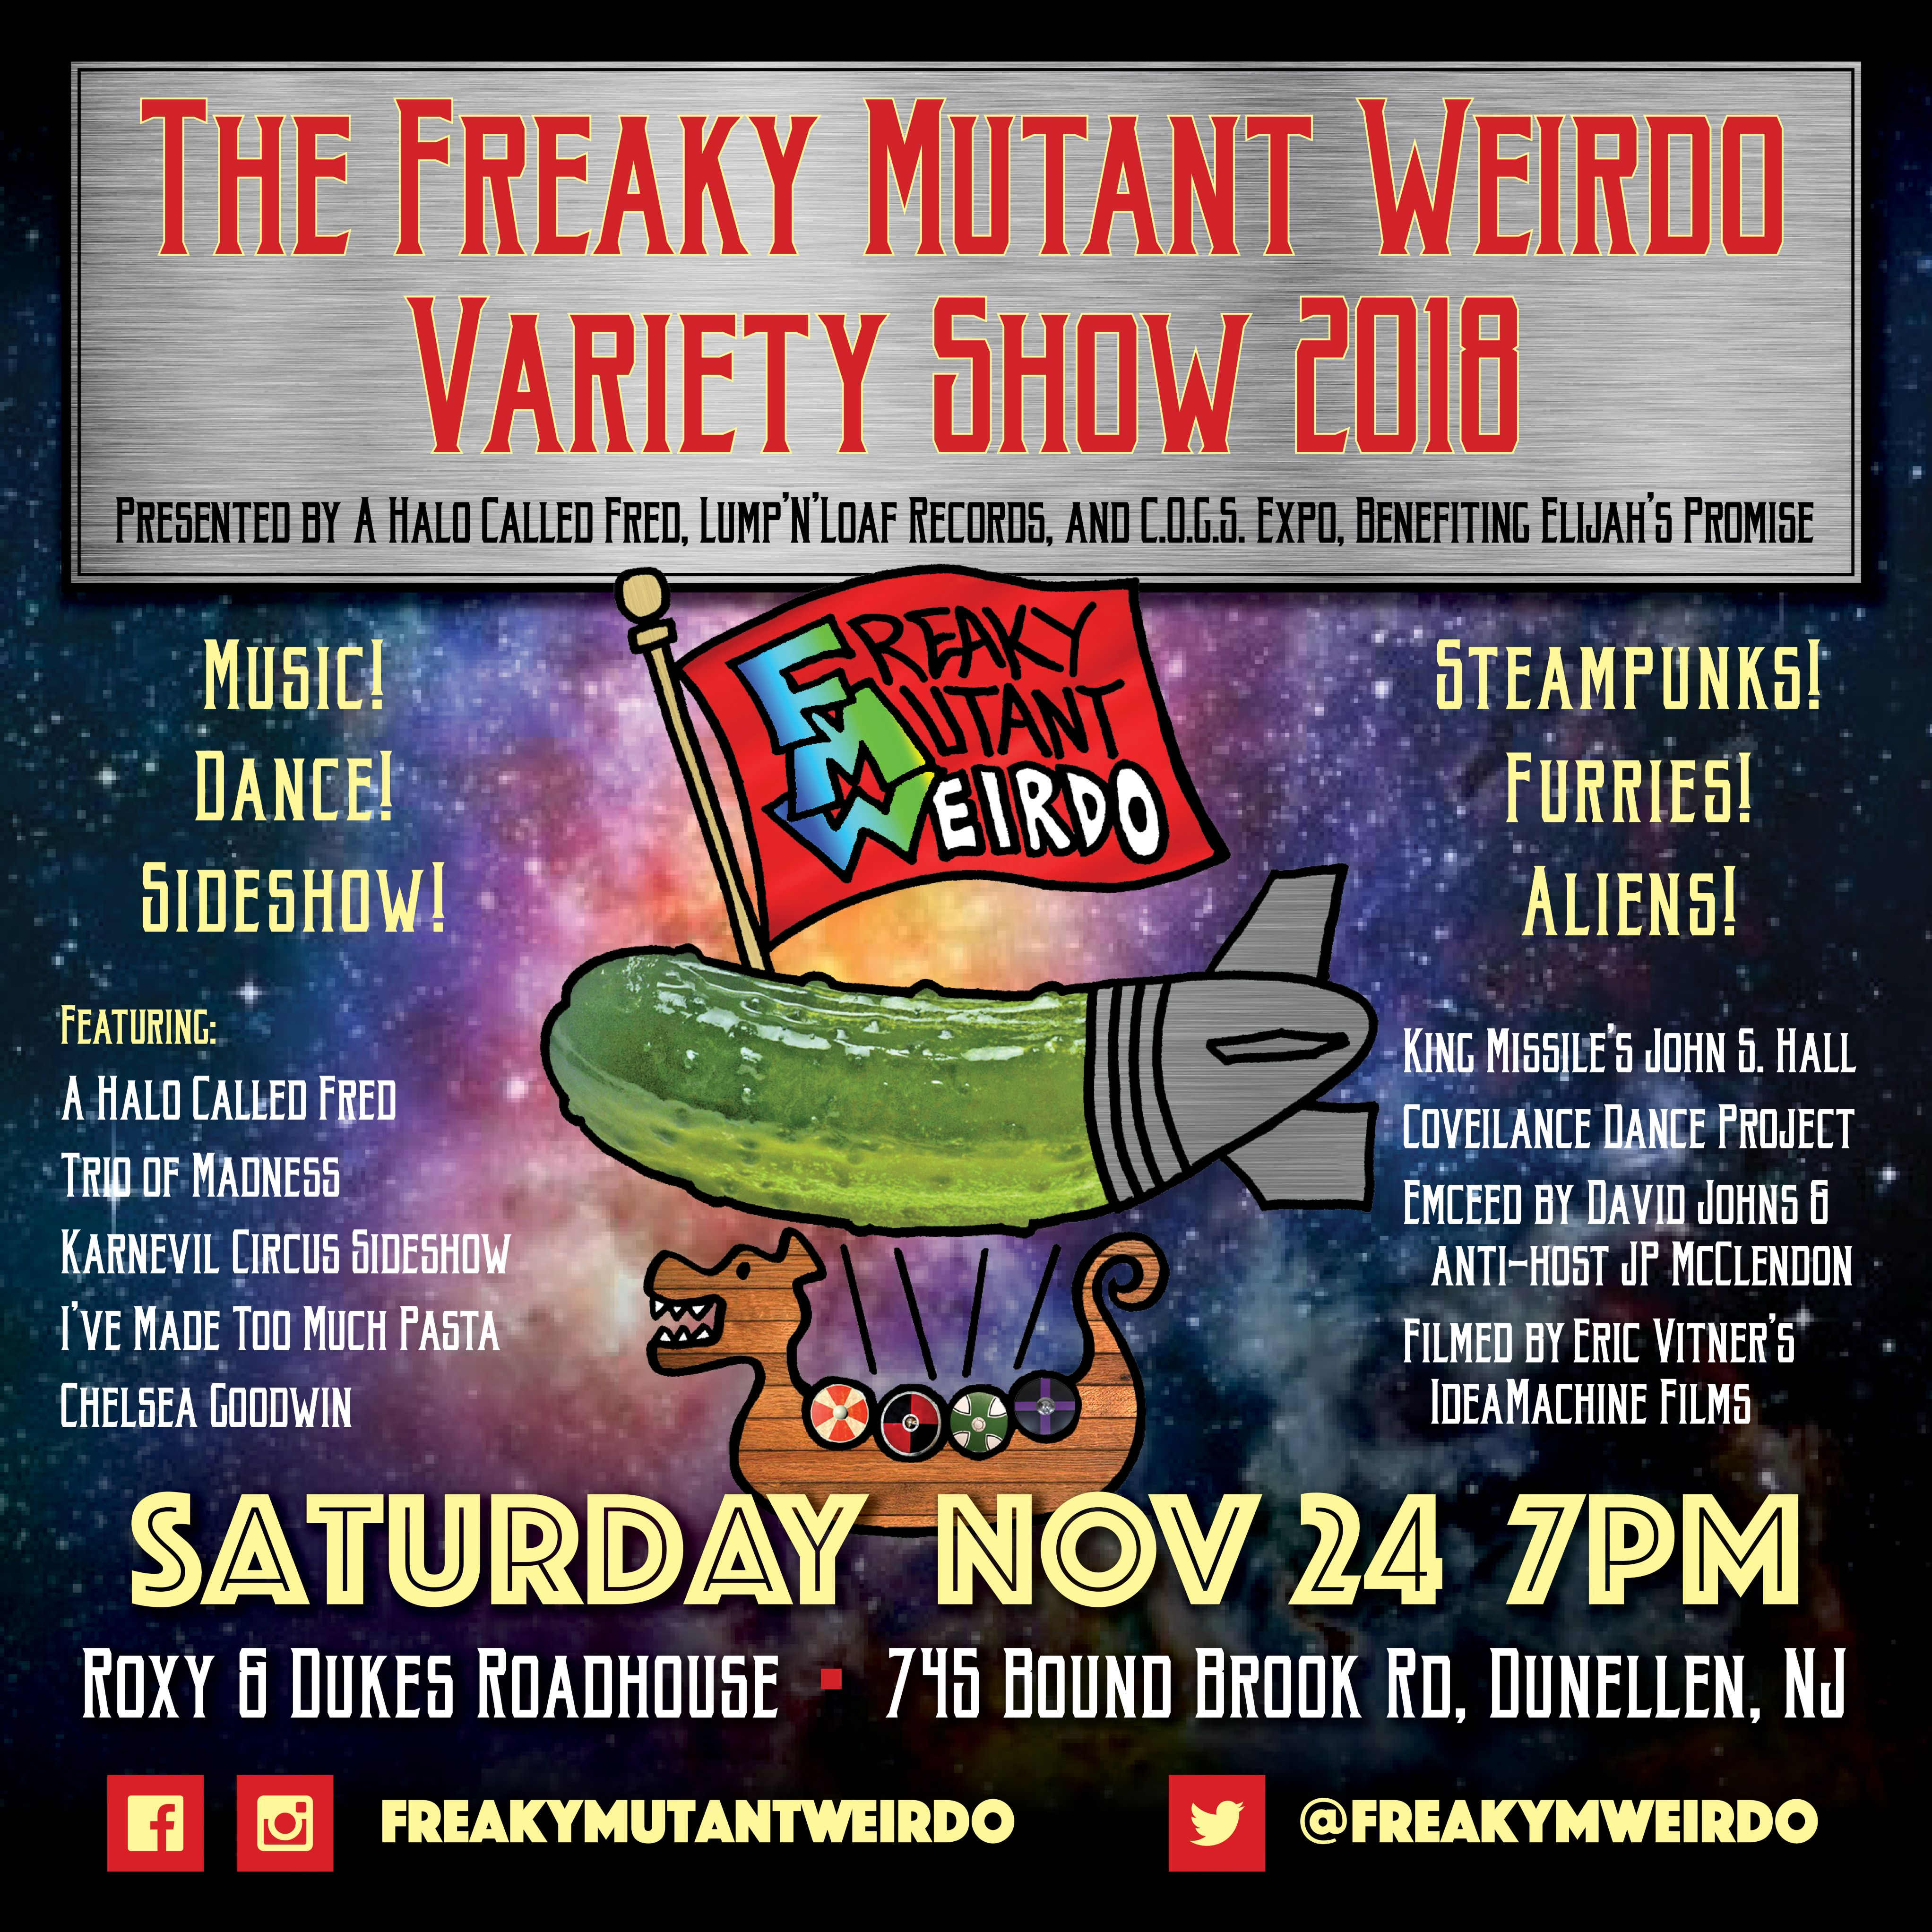 It's Back! It's the Freaky Mutant Weirdo Variety Show 2018